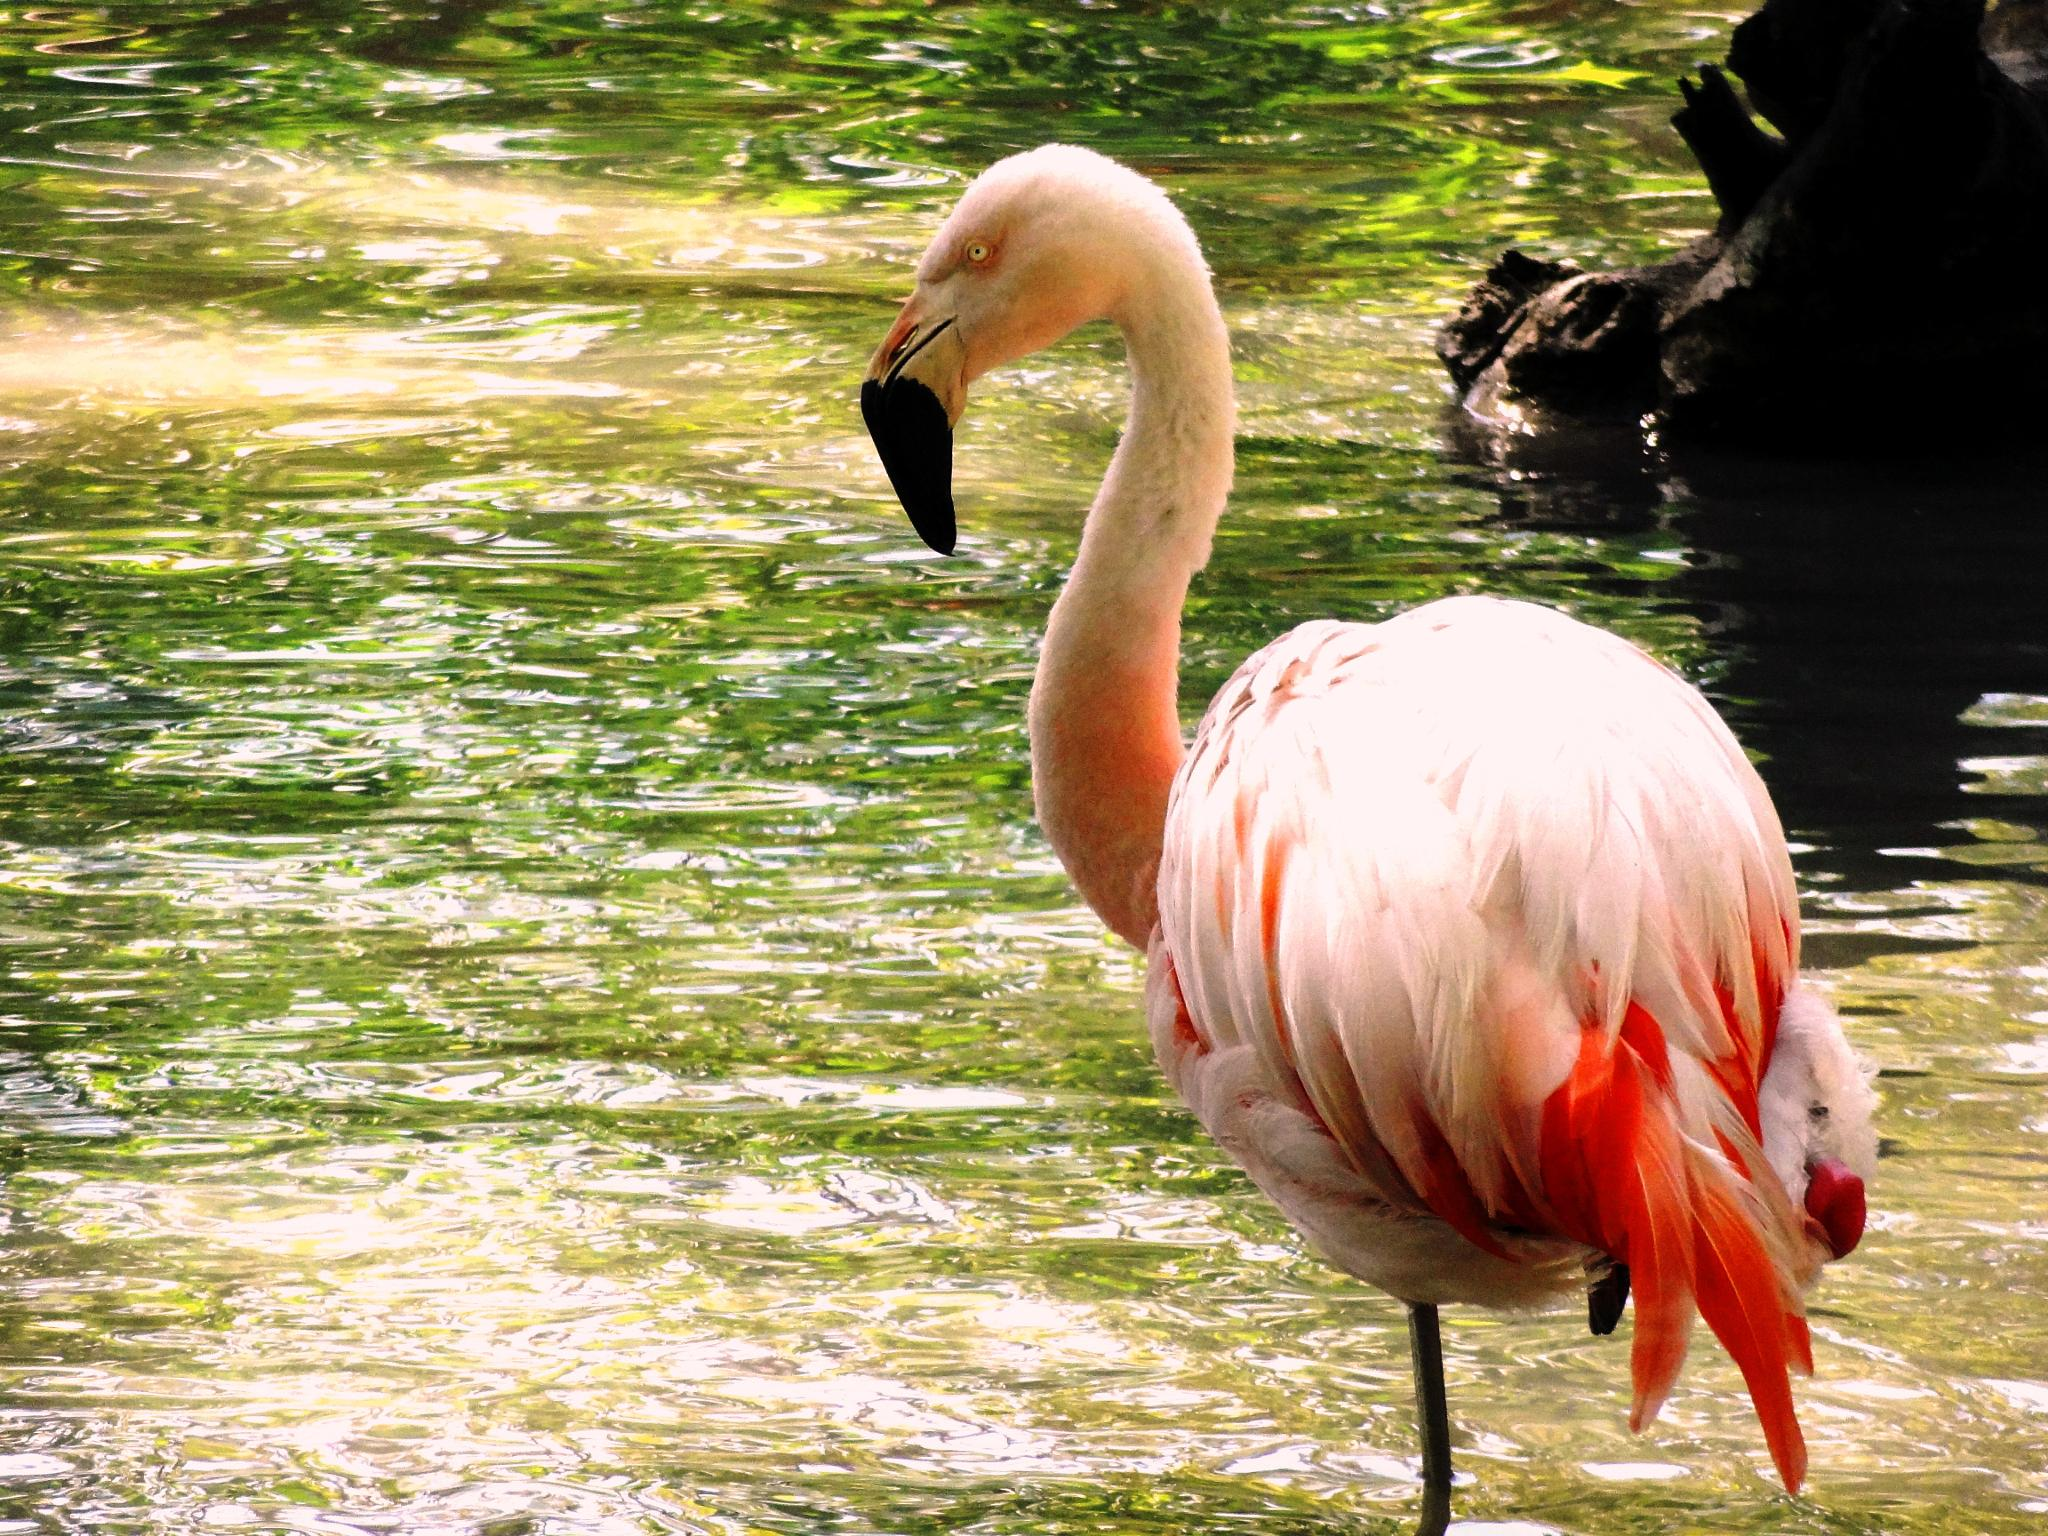 Beauty and elegance-Flamingo by Mica